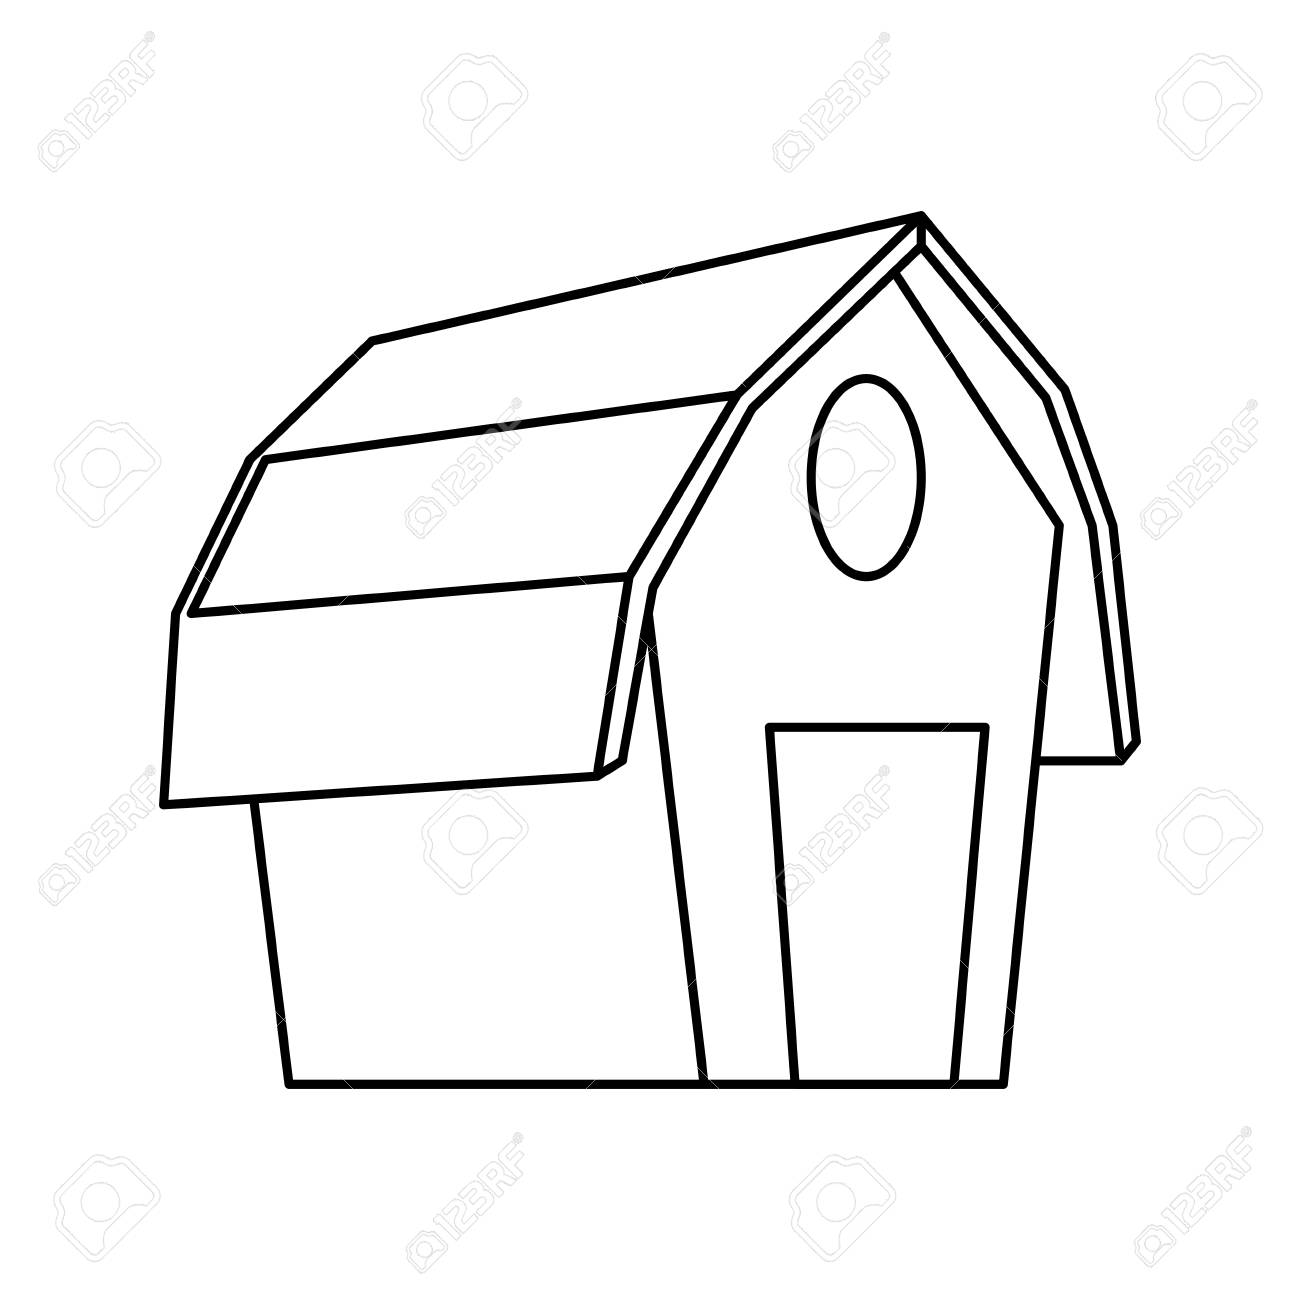 Farm Barn Building Icon Vector Illustration Graphic Design Stock